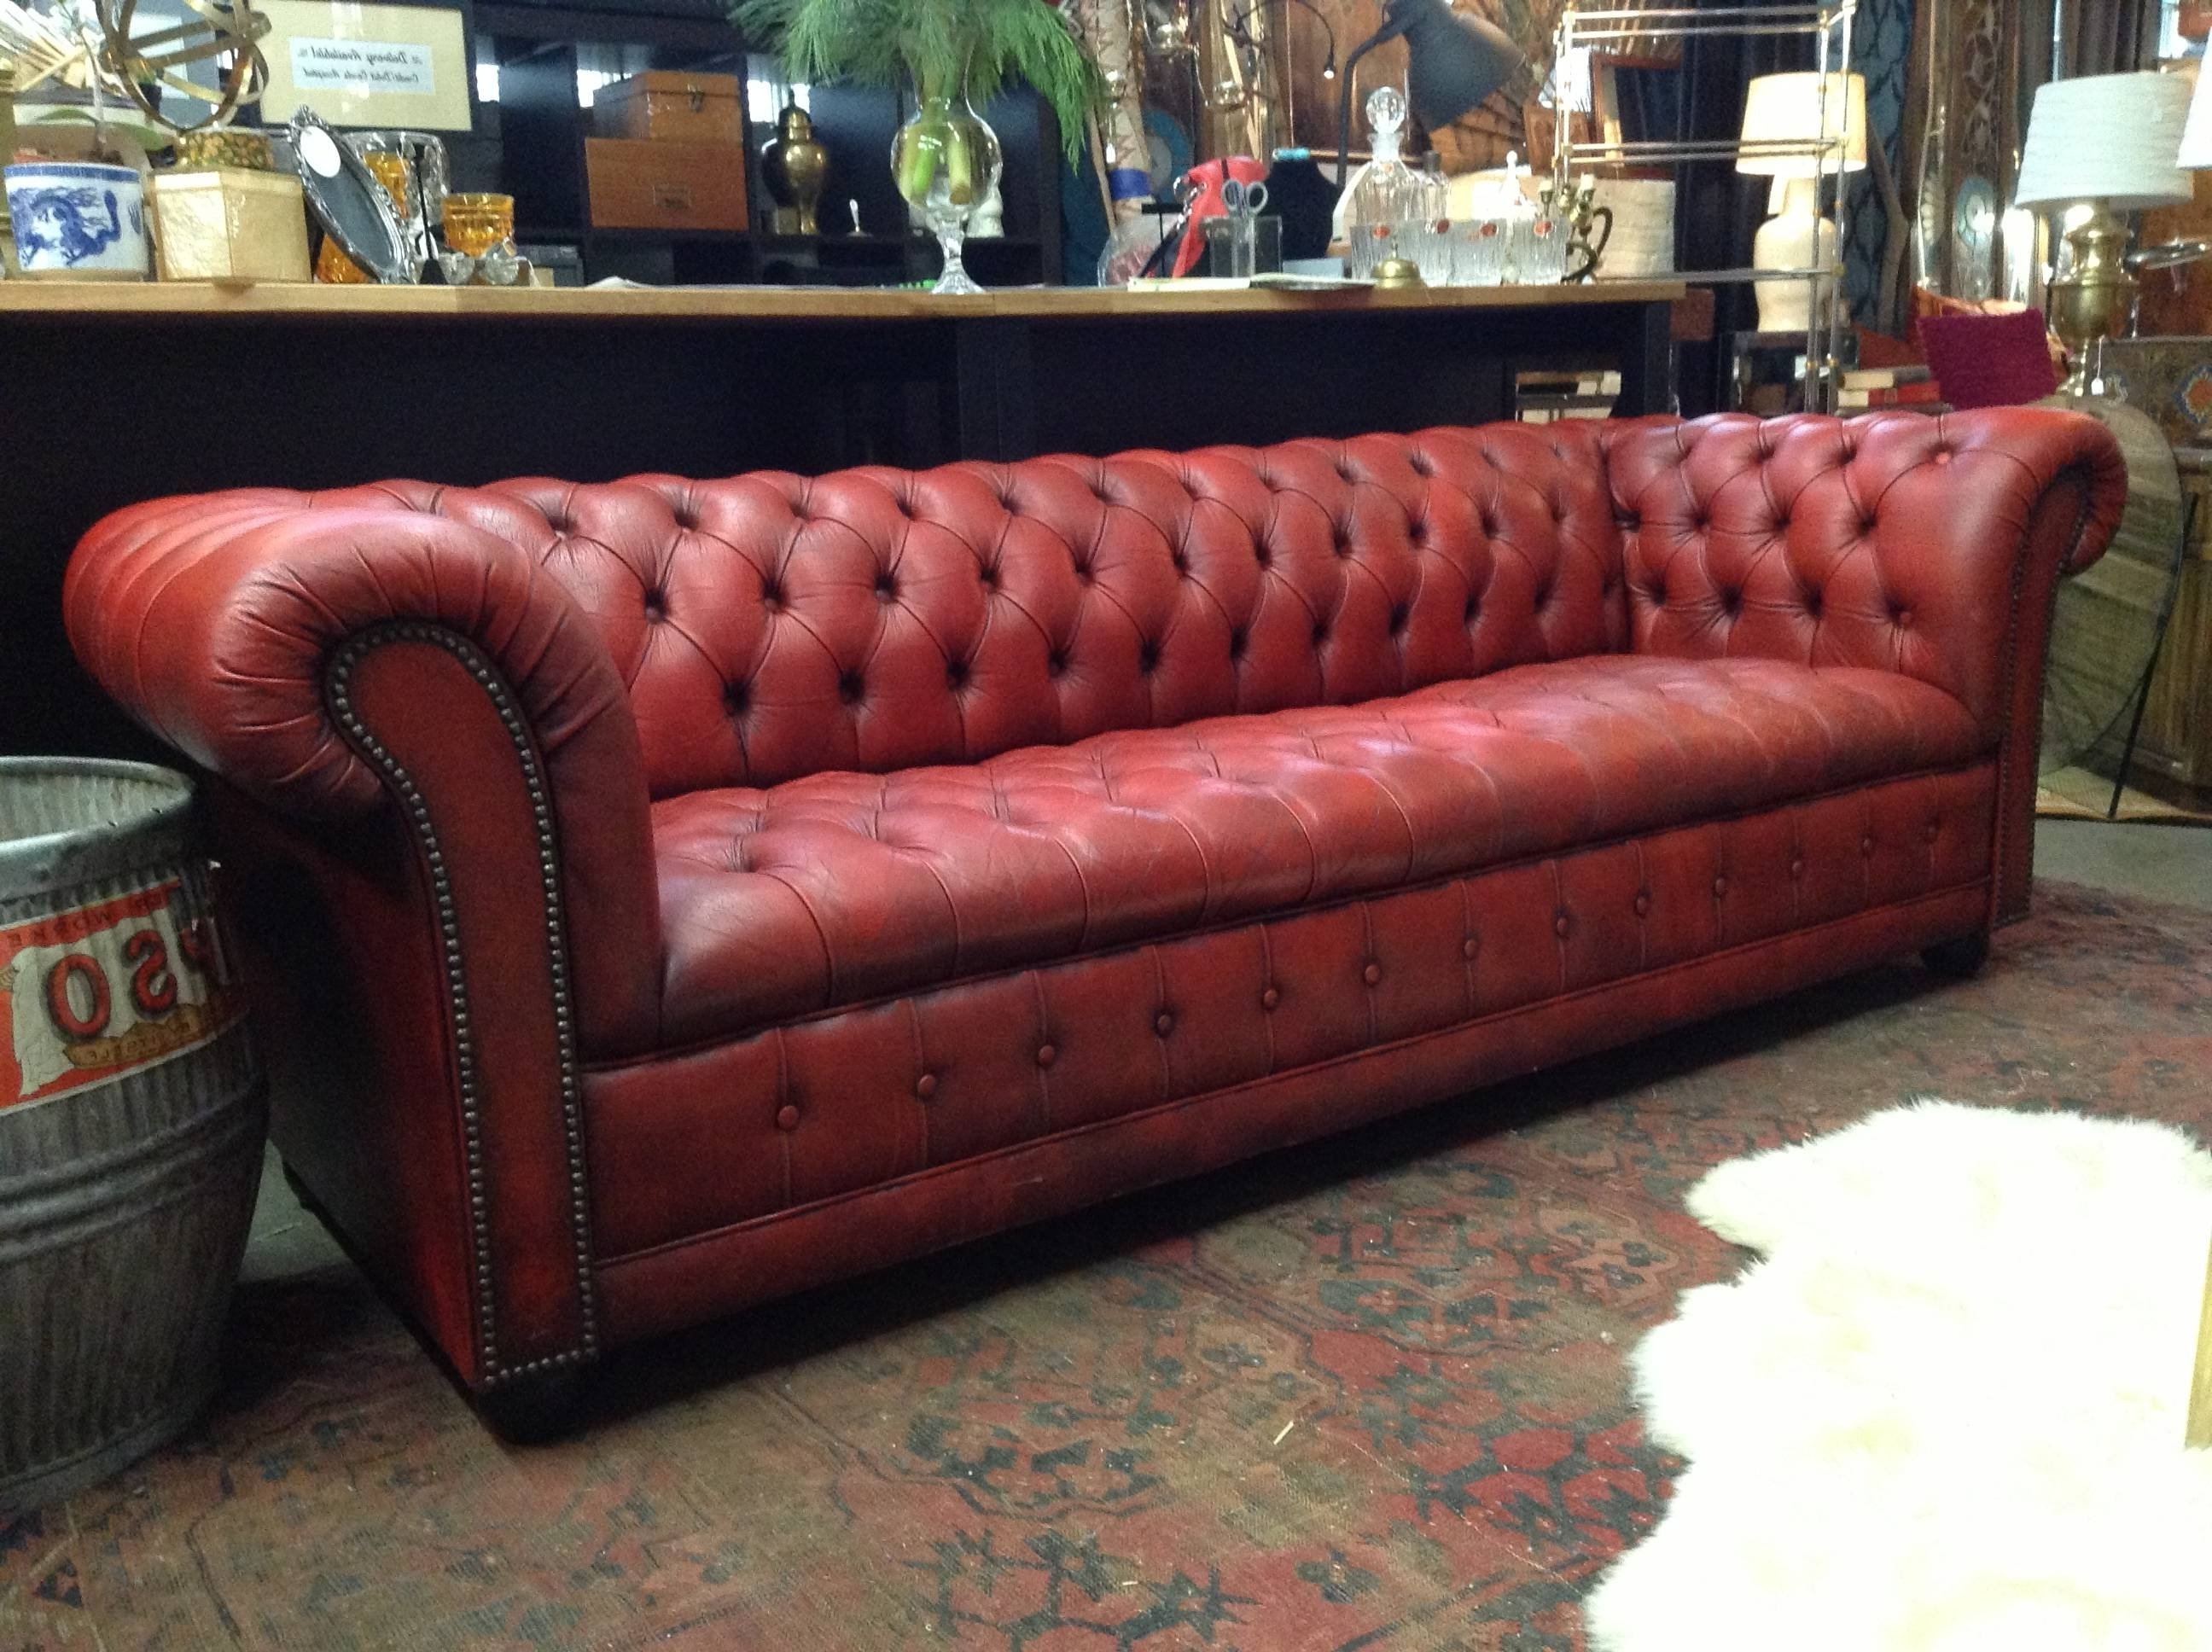 Victorian Leather Sofas Pertaining To Most Up To Date Ideas Of Victorian Leather Sofas Sofa Used Victoria Couches Set (Gallery 15 of 20)